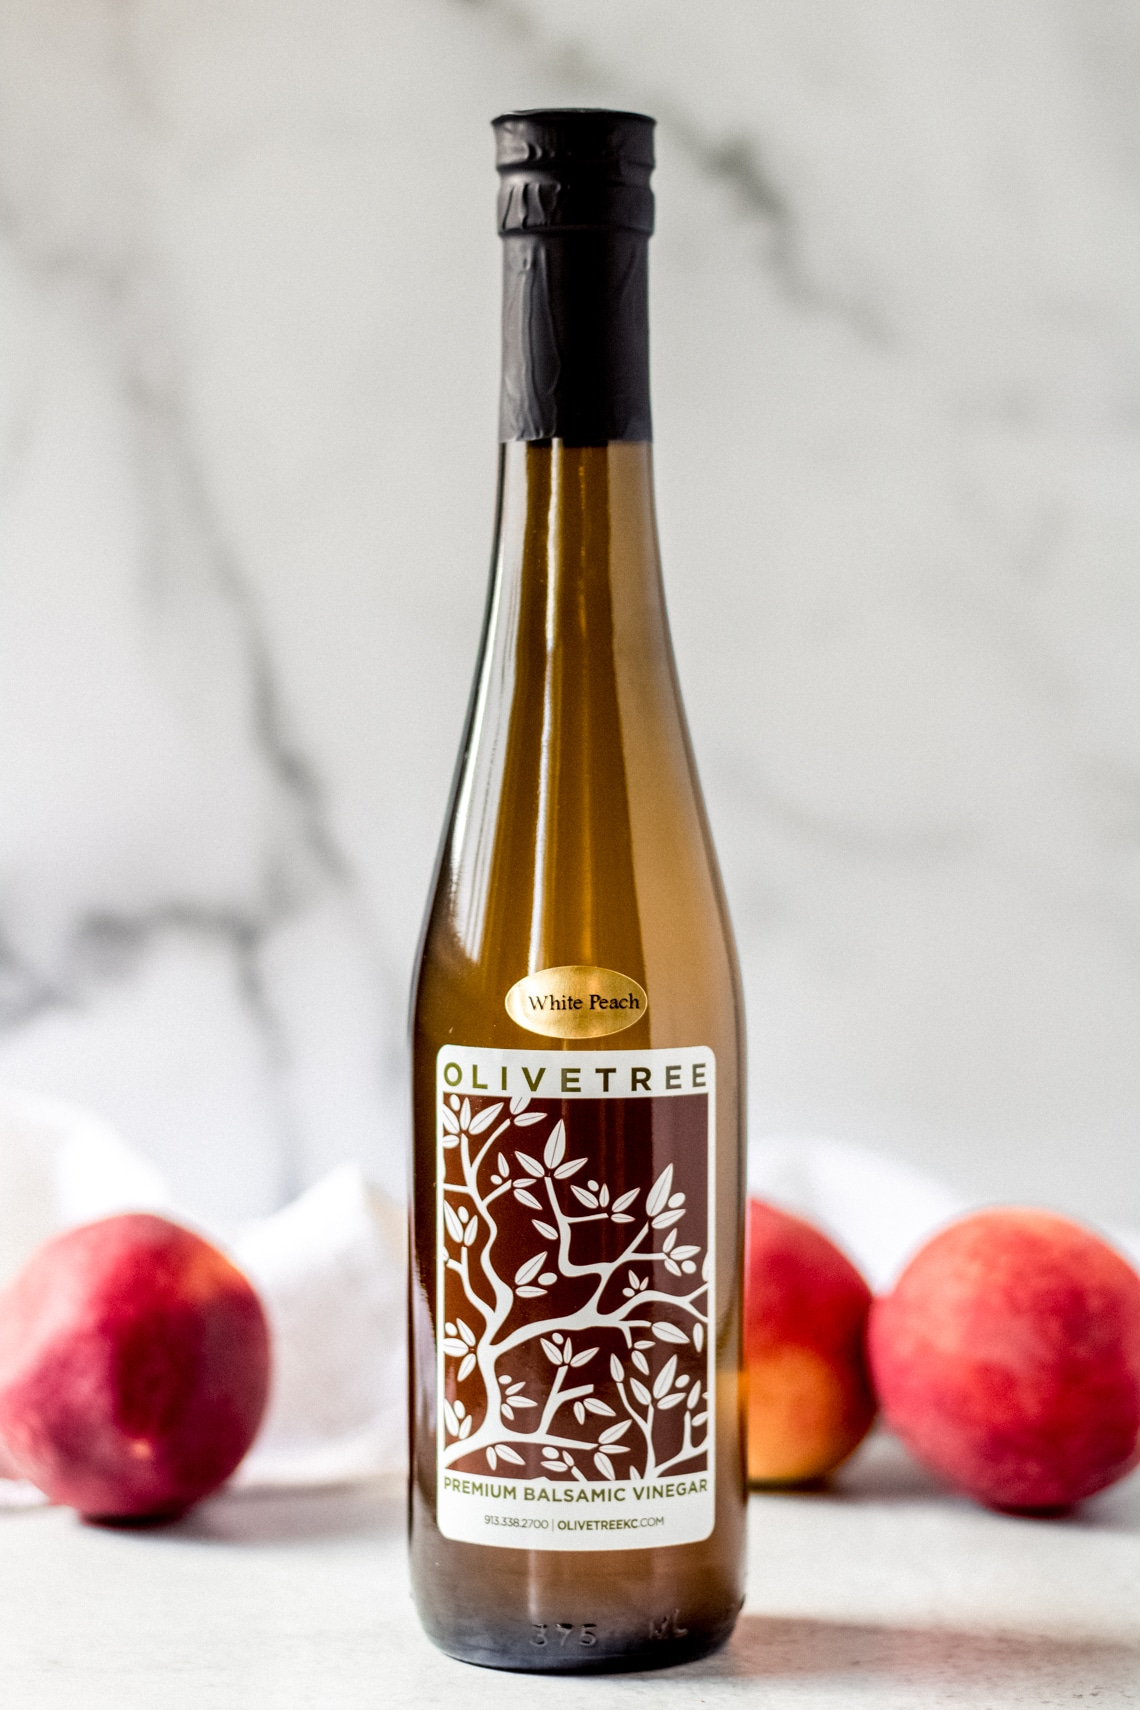 a bottle of white peach balsamic vinegar